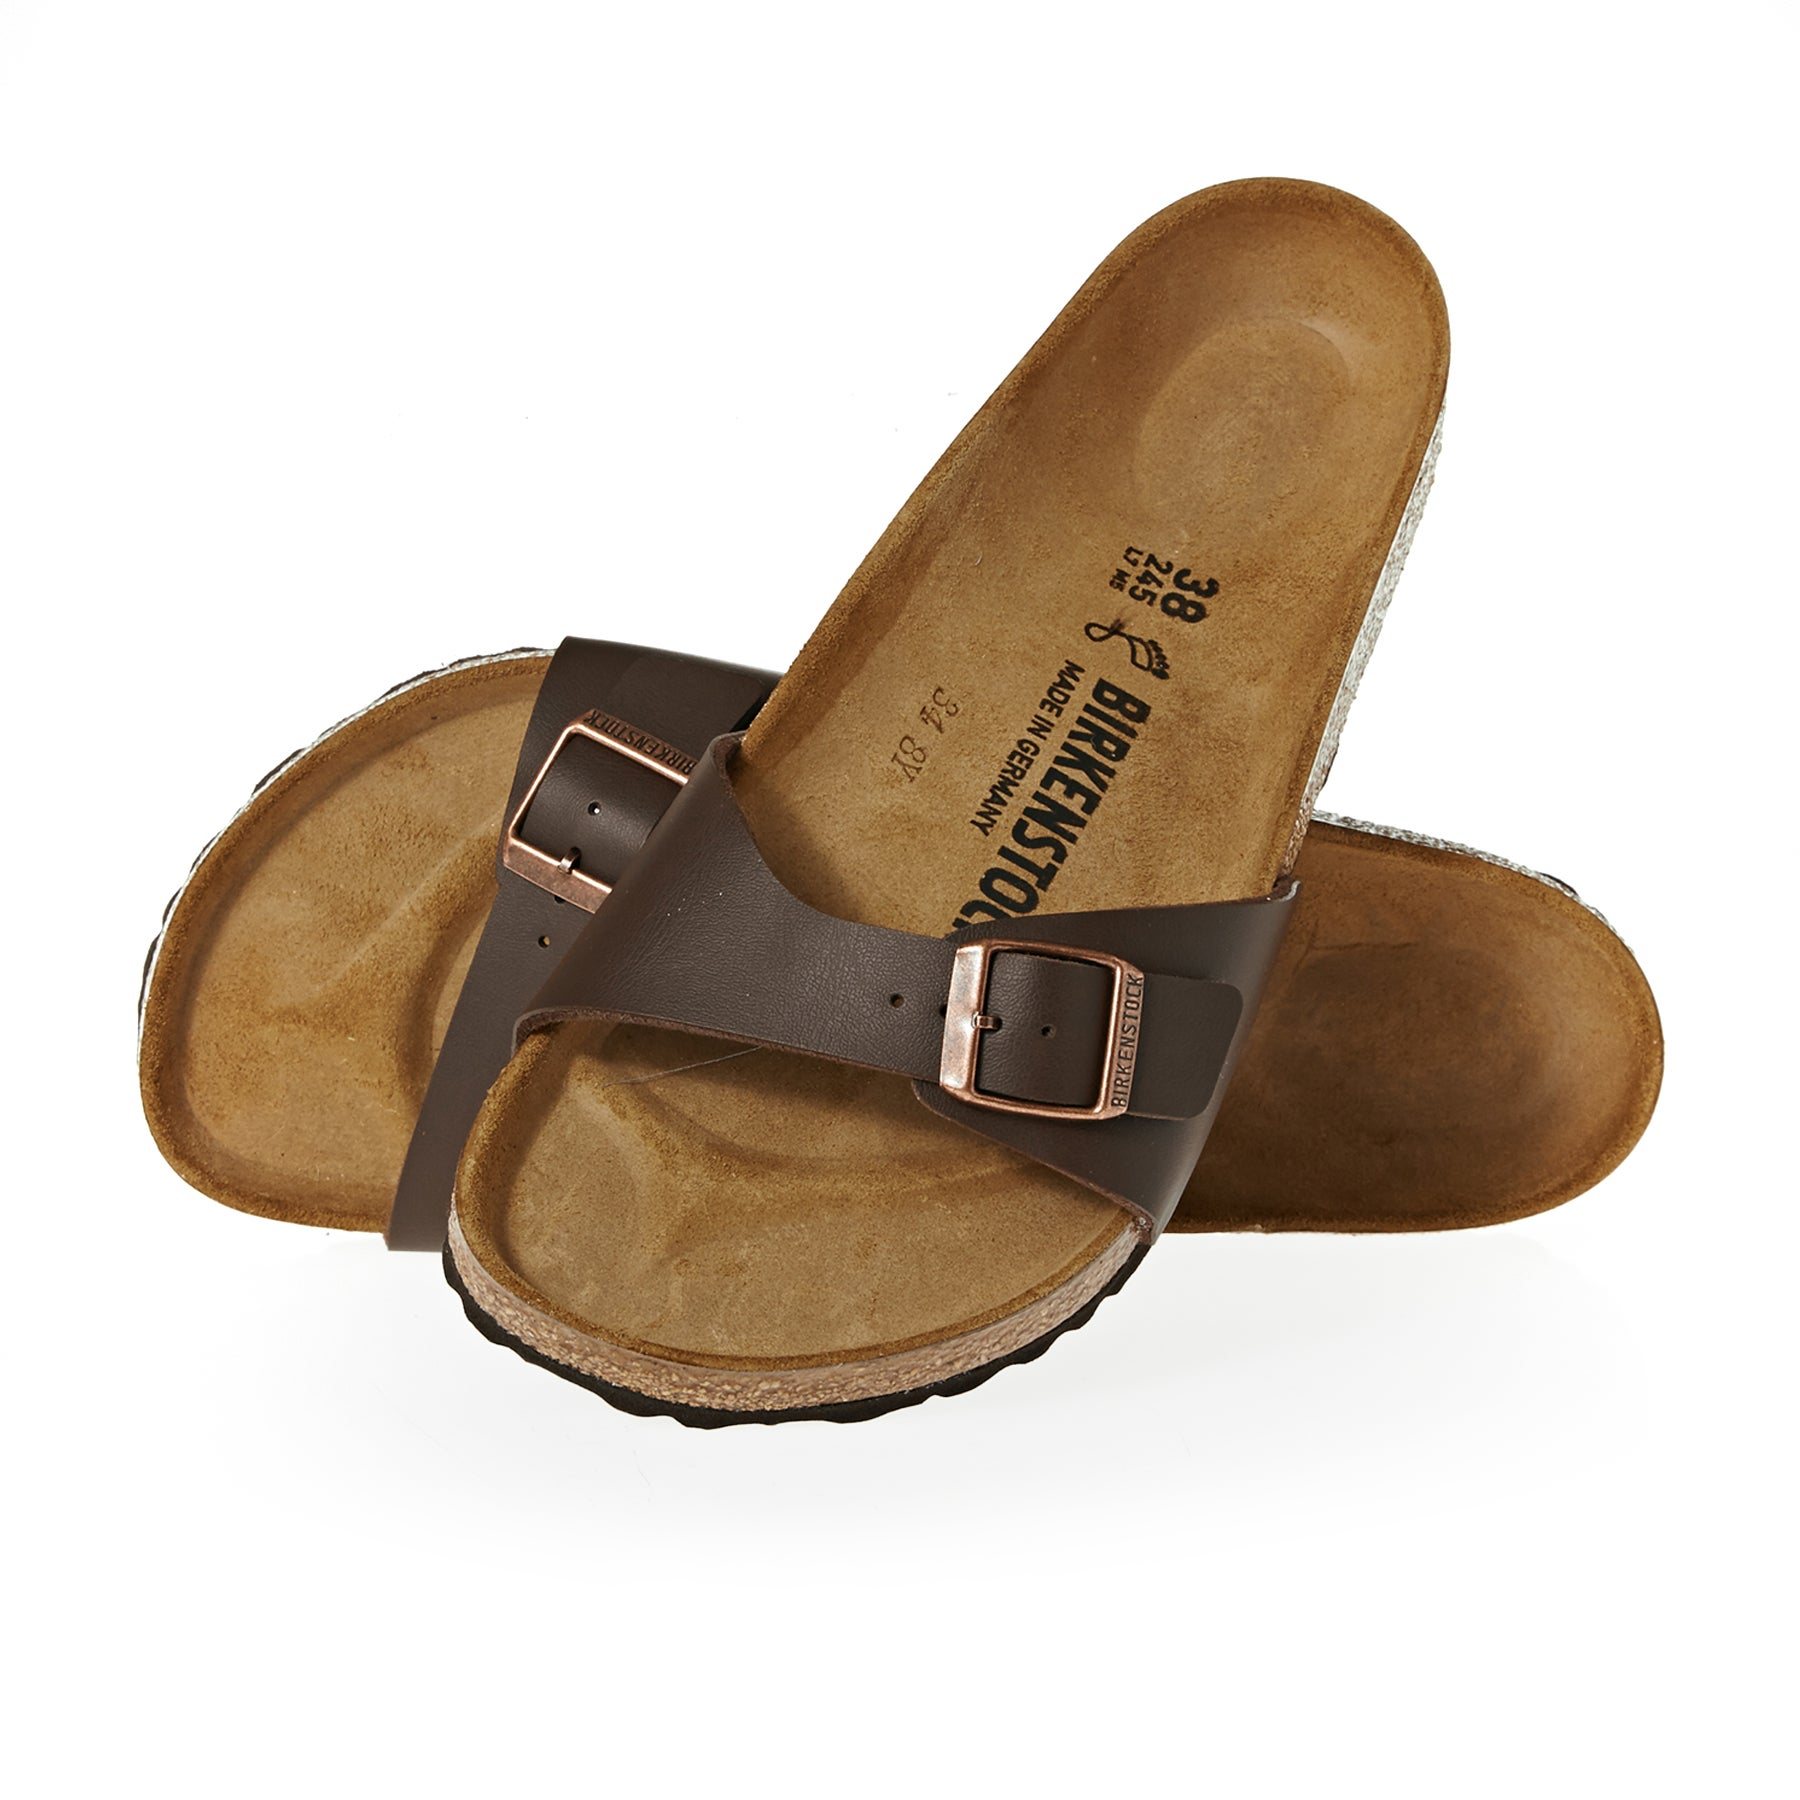 Birkenstock Madrid Womens Sandals - Dark Brown